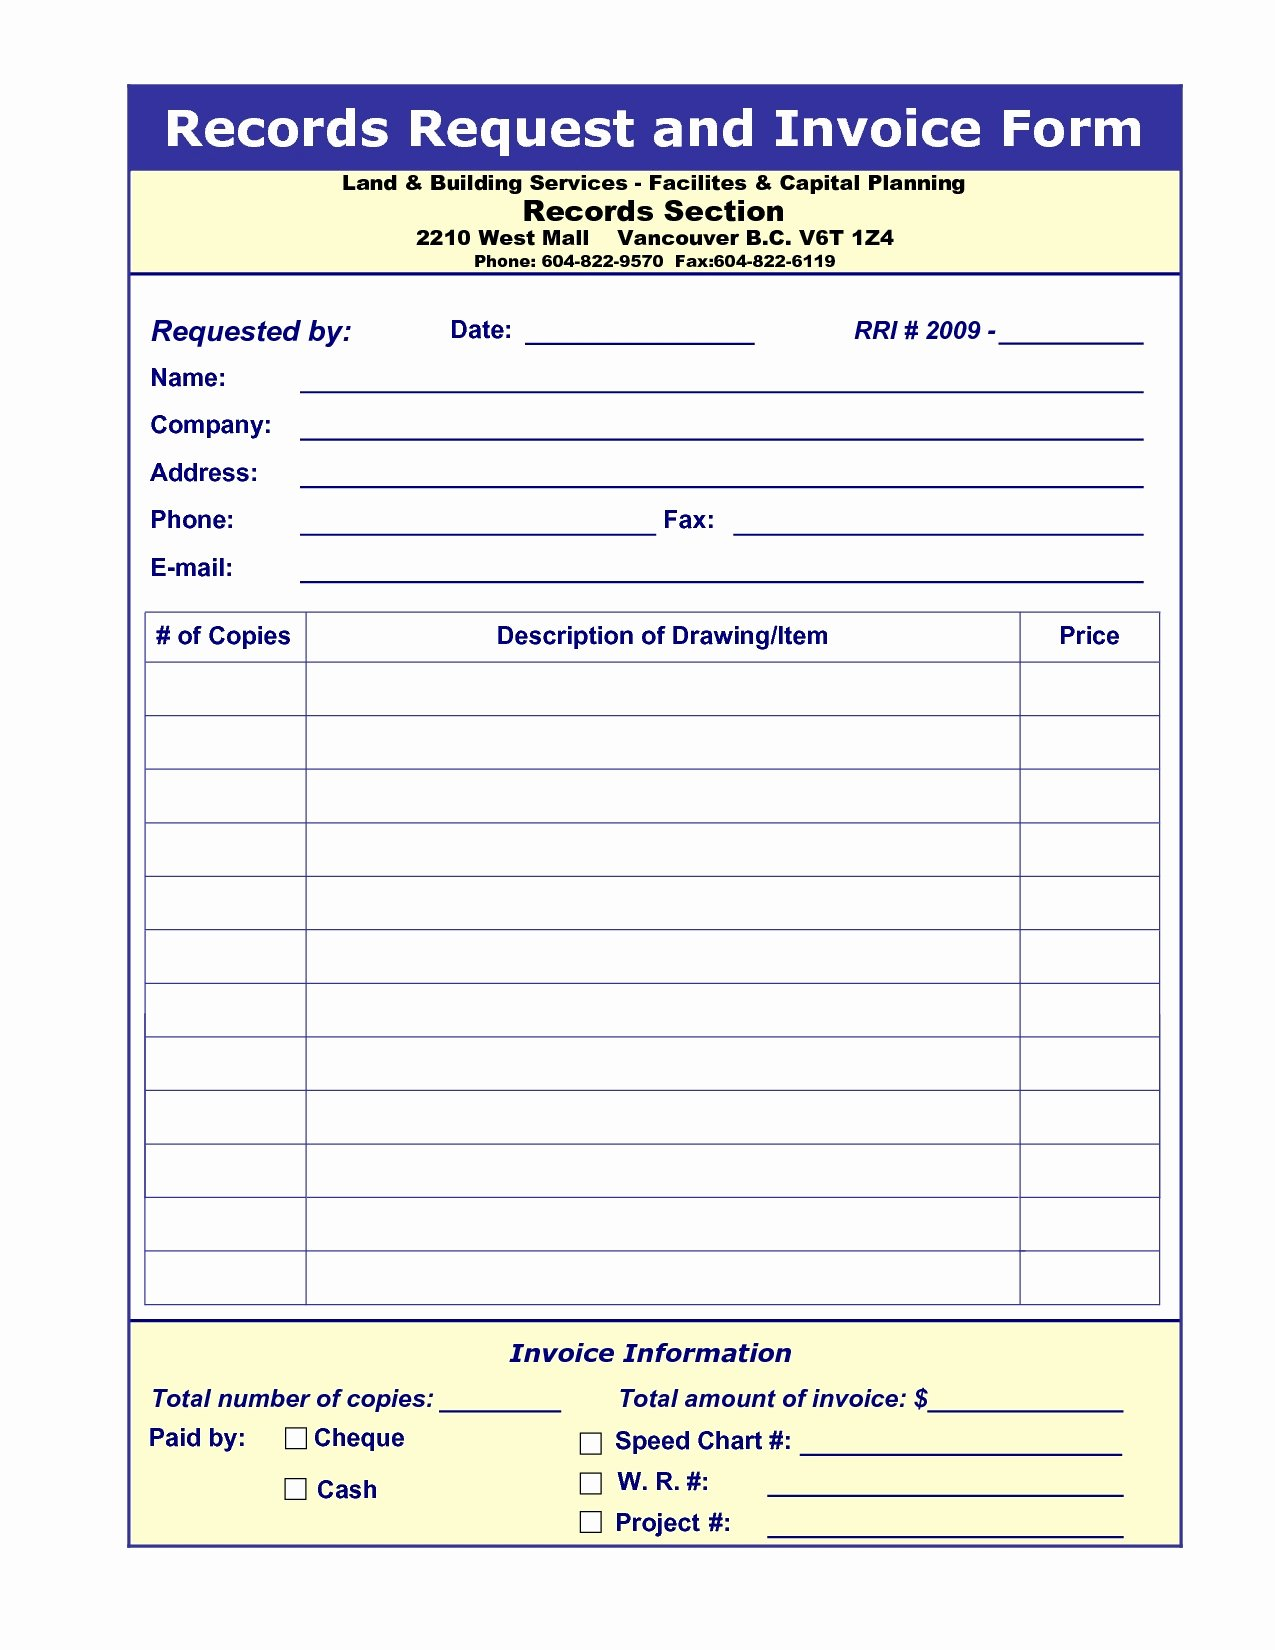 Medical Records Invoice Template Luxury Medical Records Invoice Invoice Template Ideas